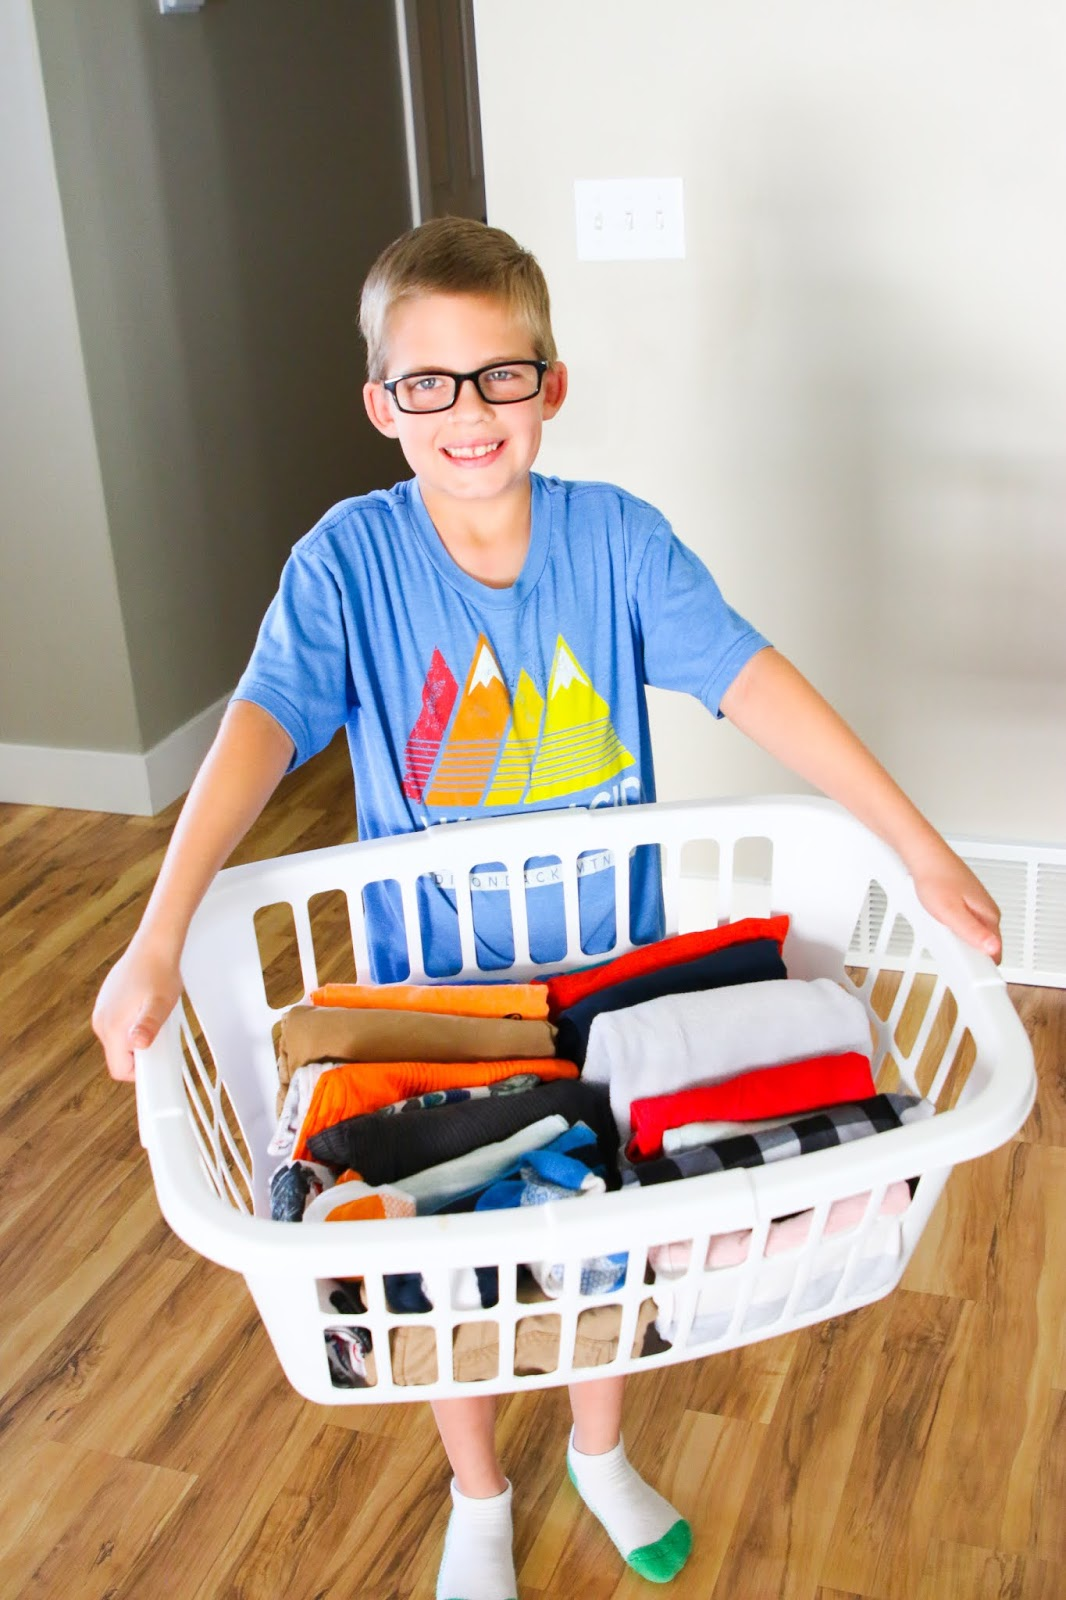 How to get kids to do chores. Chores for kids. How to teach chores in your home. Chore charts for kids. How to teach kids about money. How much allowance to pay your children. Why chore charts don't work. How to handle chores with kids. How to get children to do chores. How to implement chores at home. #chores #Kids  #cleaning #familyeconomy #family #familymanagement #money #finance